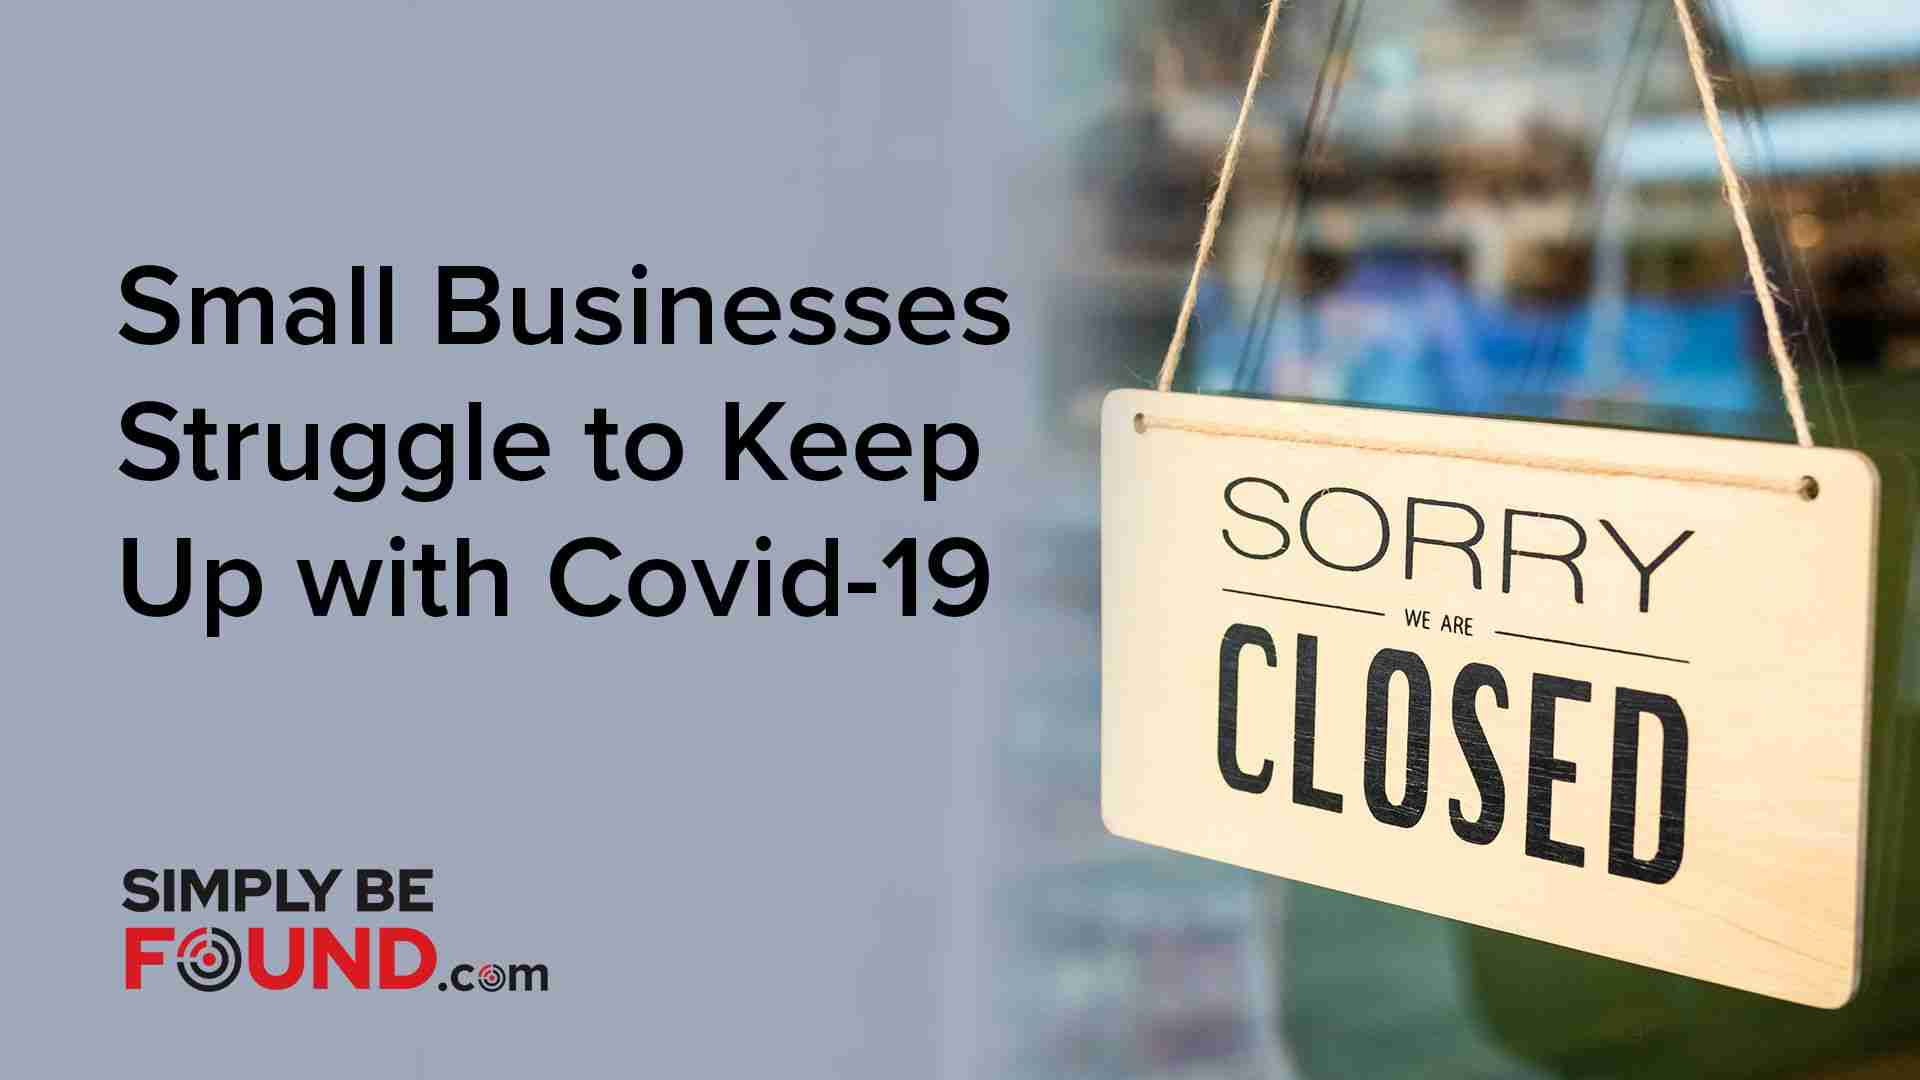 Small Businesses Struggle to Keep Up with Covid-19